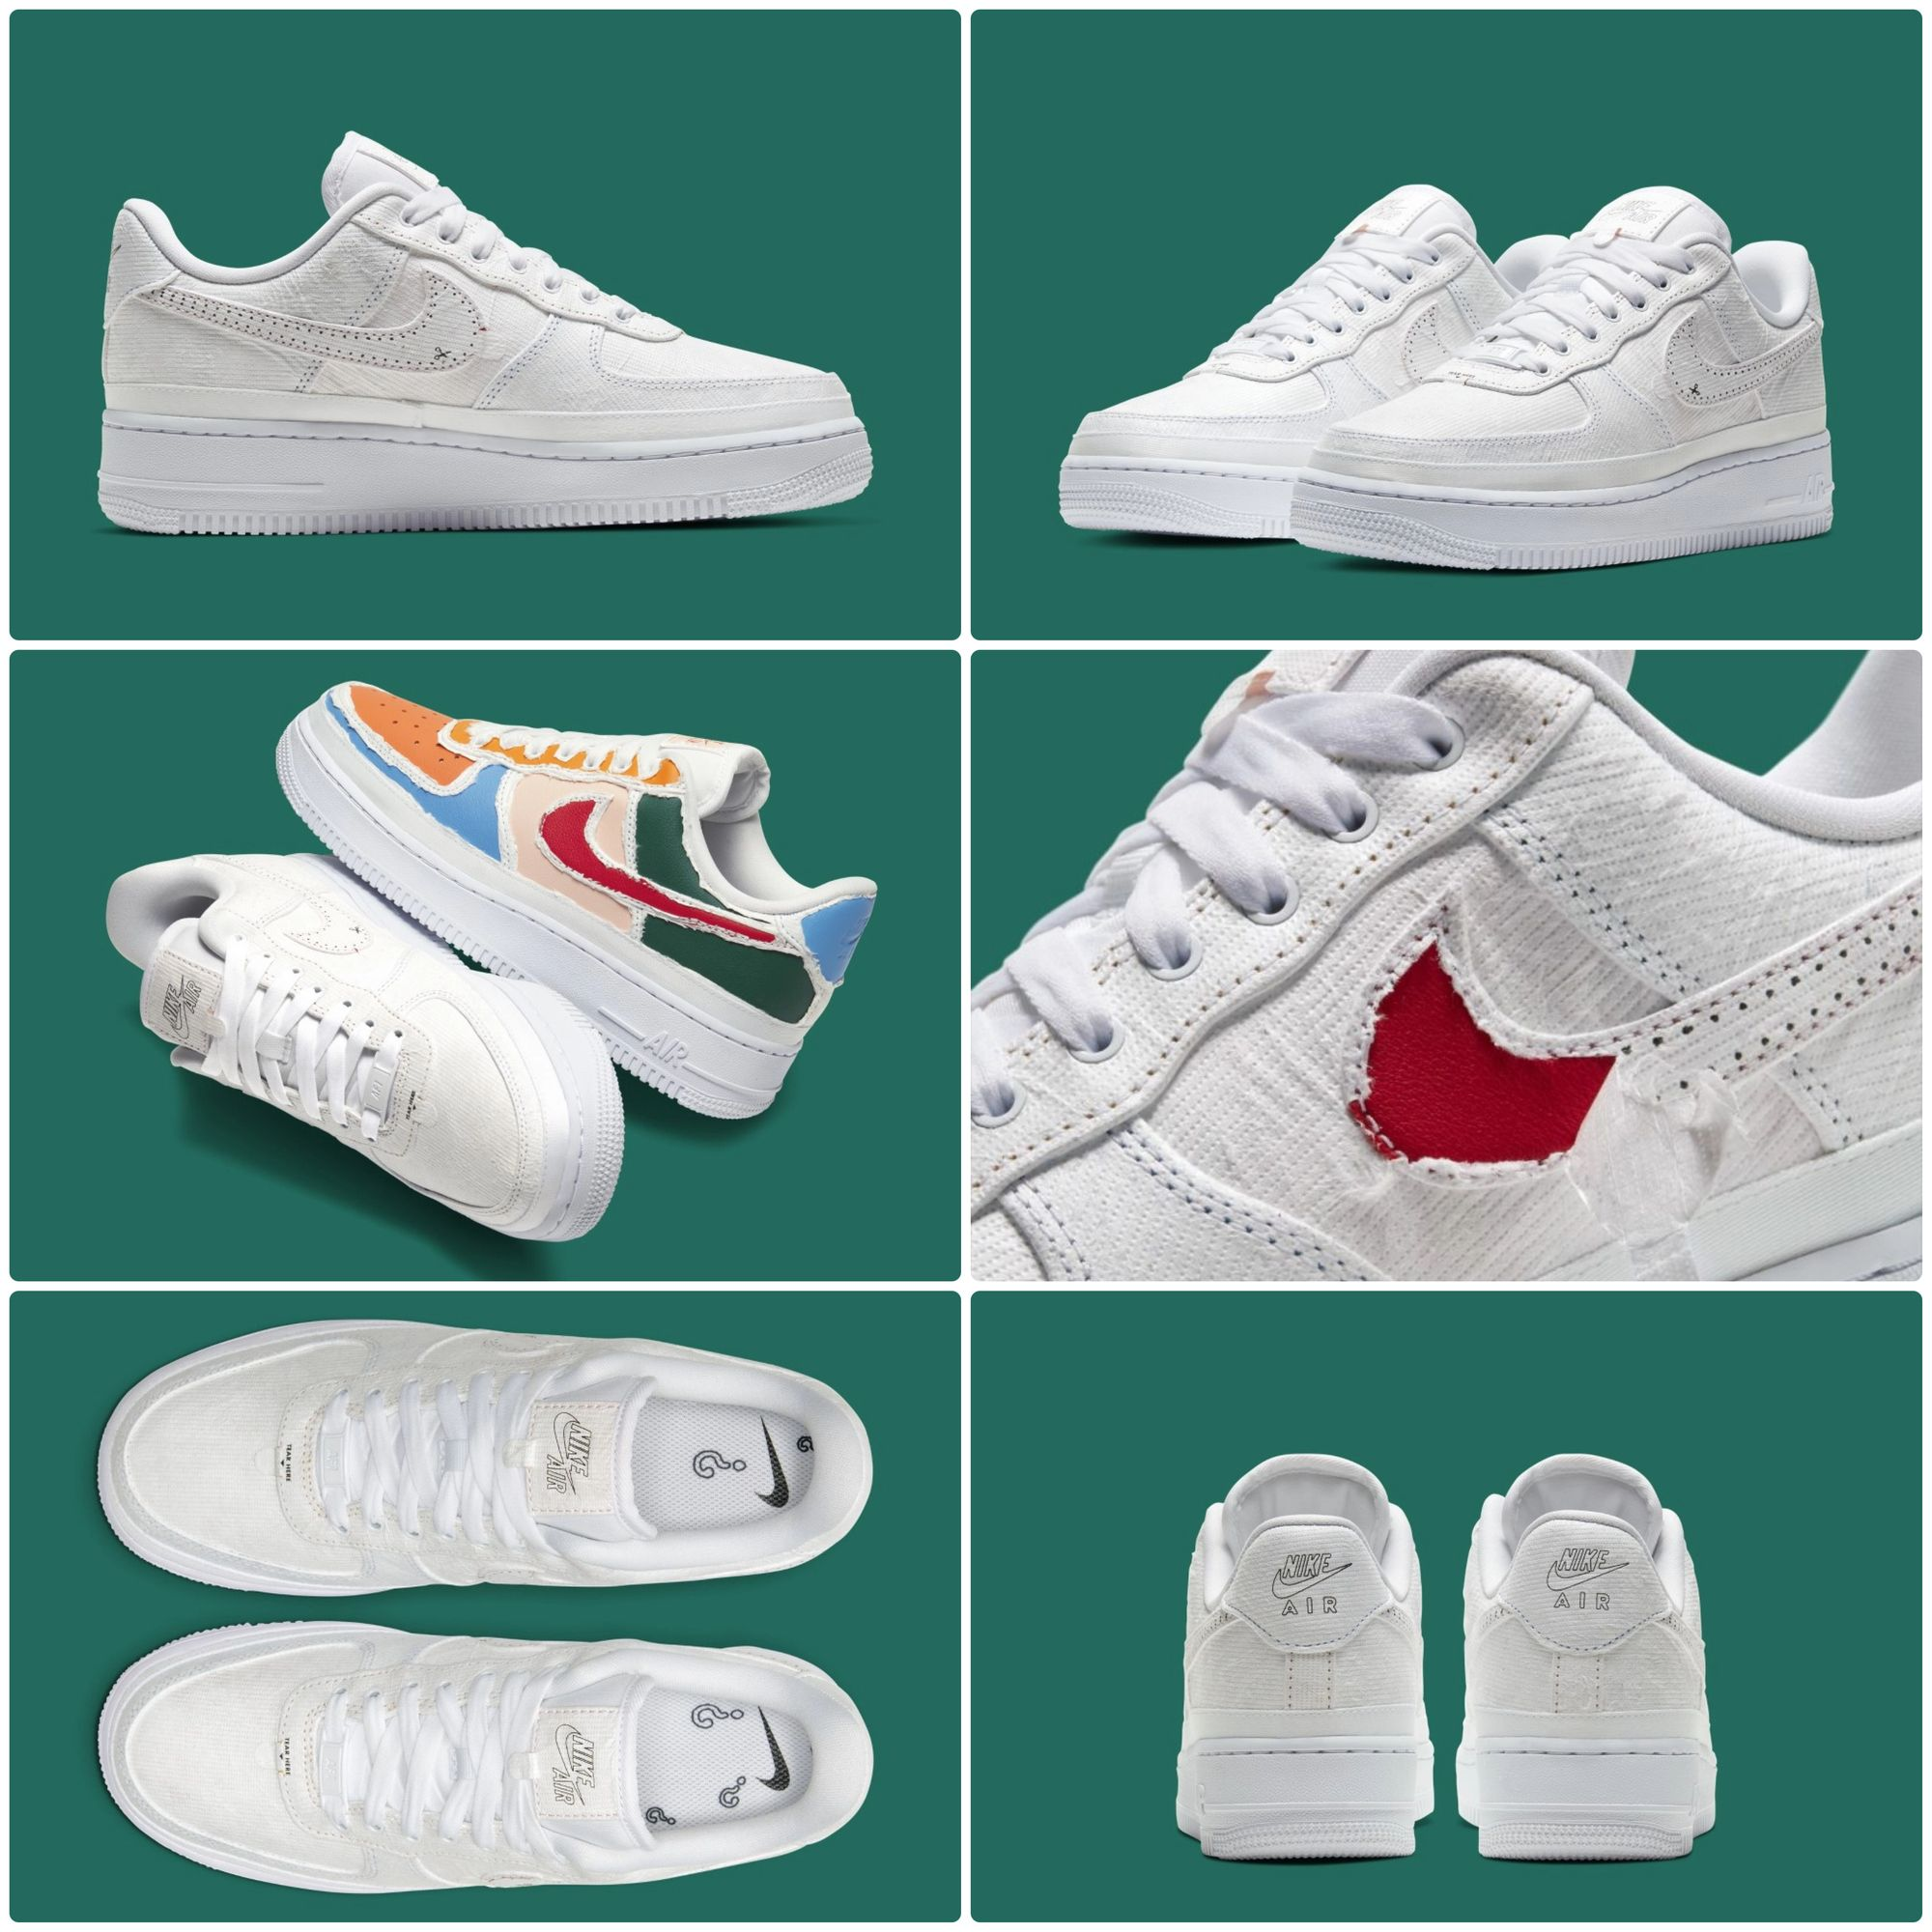 Pin auf Sneakers